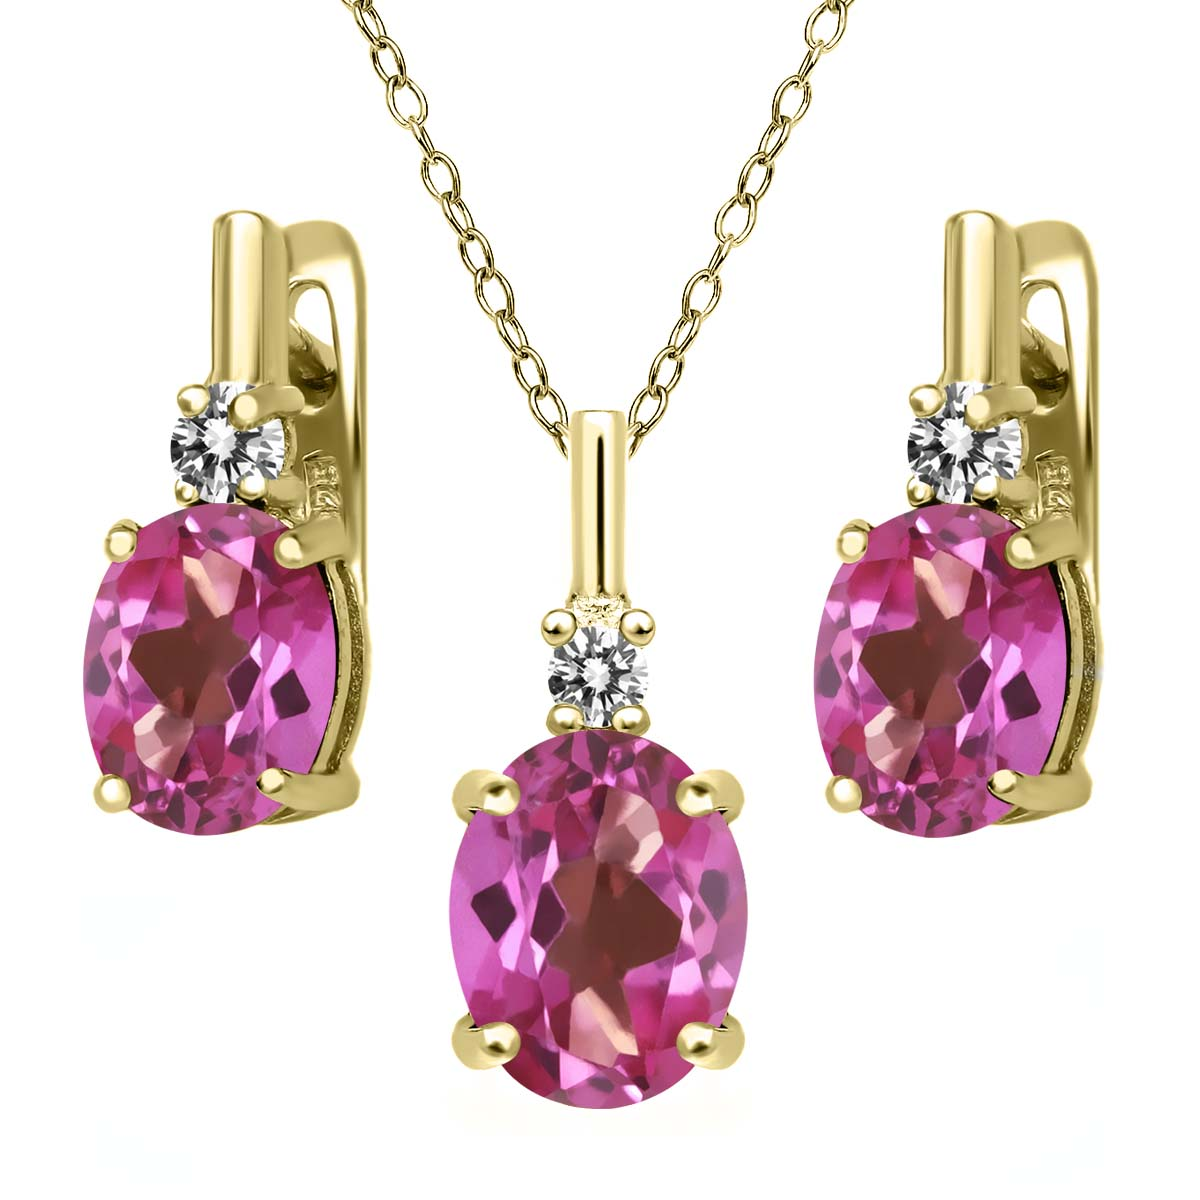 6.97 Ct Pink Mystic Topaz White Diamond 18K Yellow Gold Plated Silver Pendant Earrings Set by